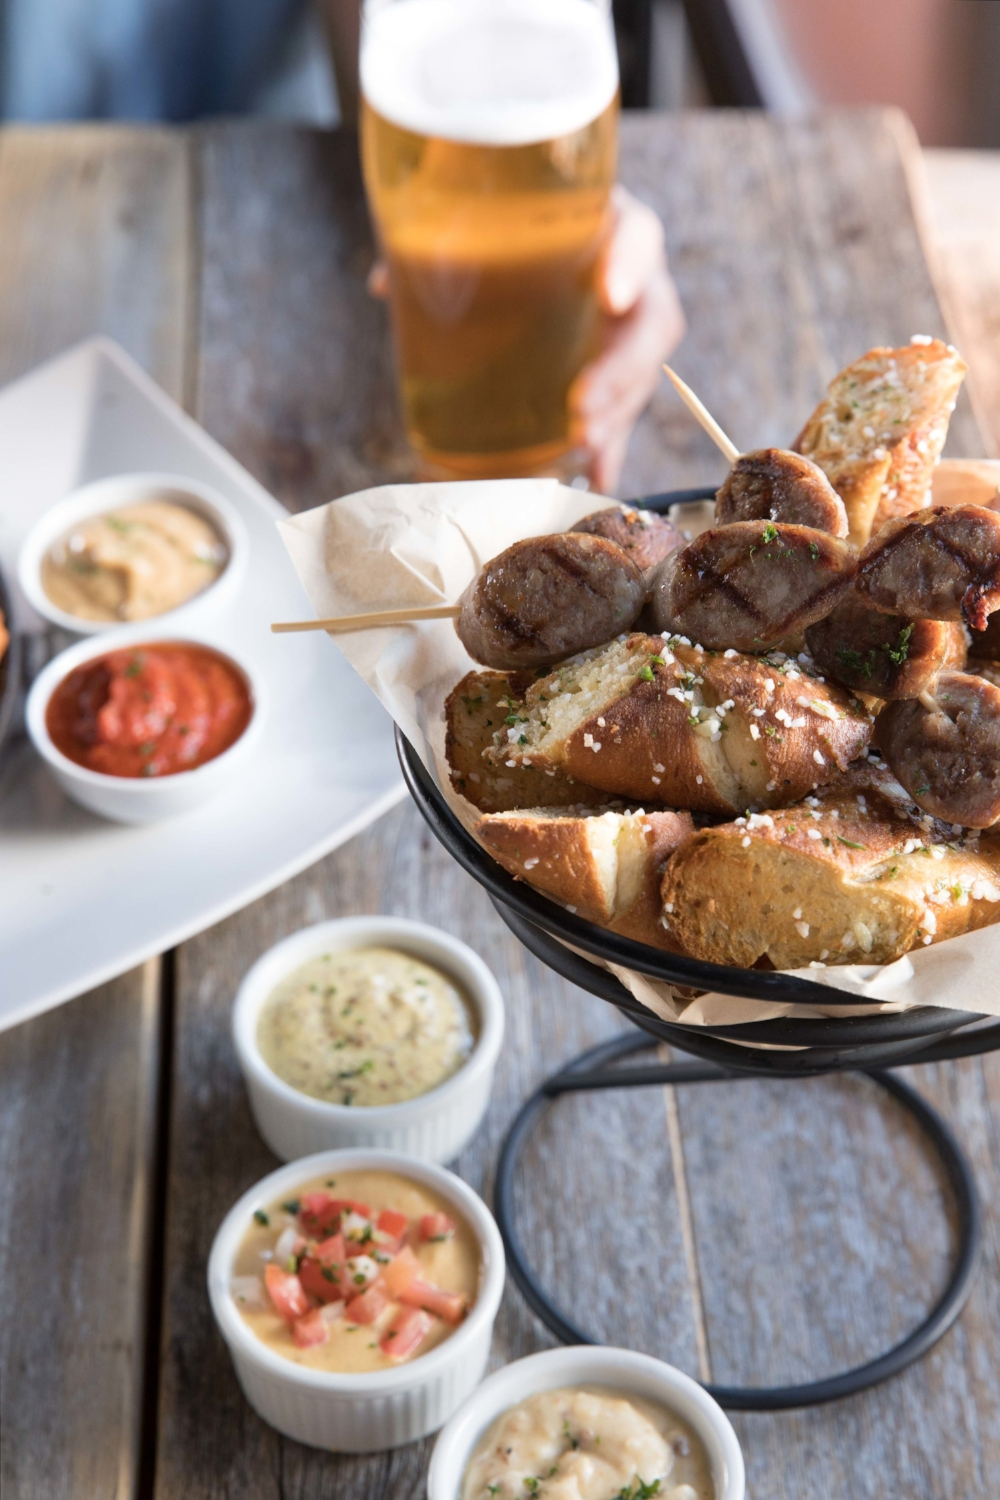 Jimena-Peck-Denver-Food-Photographer-Gordon-Biersch-Brewery-Sausage-Bread-Garlic